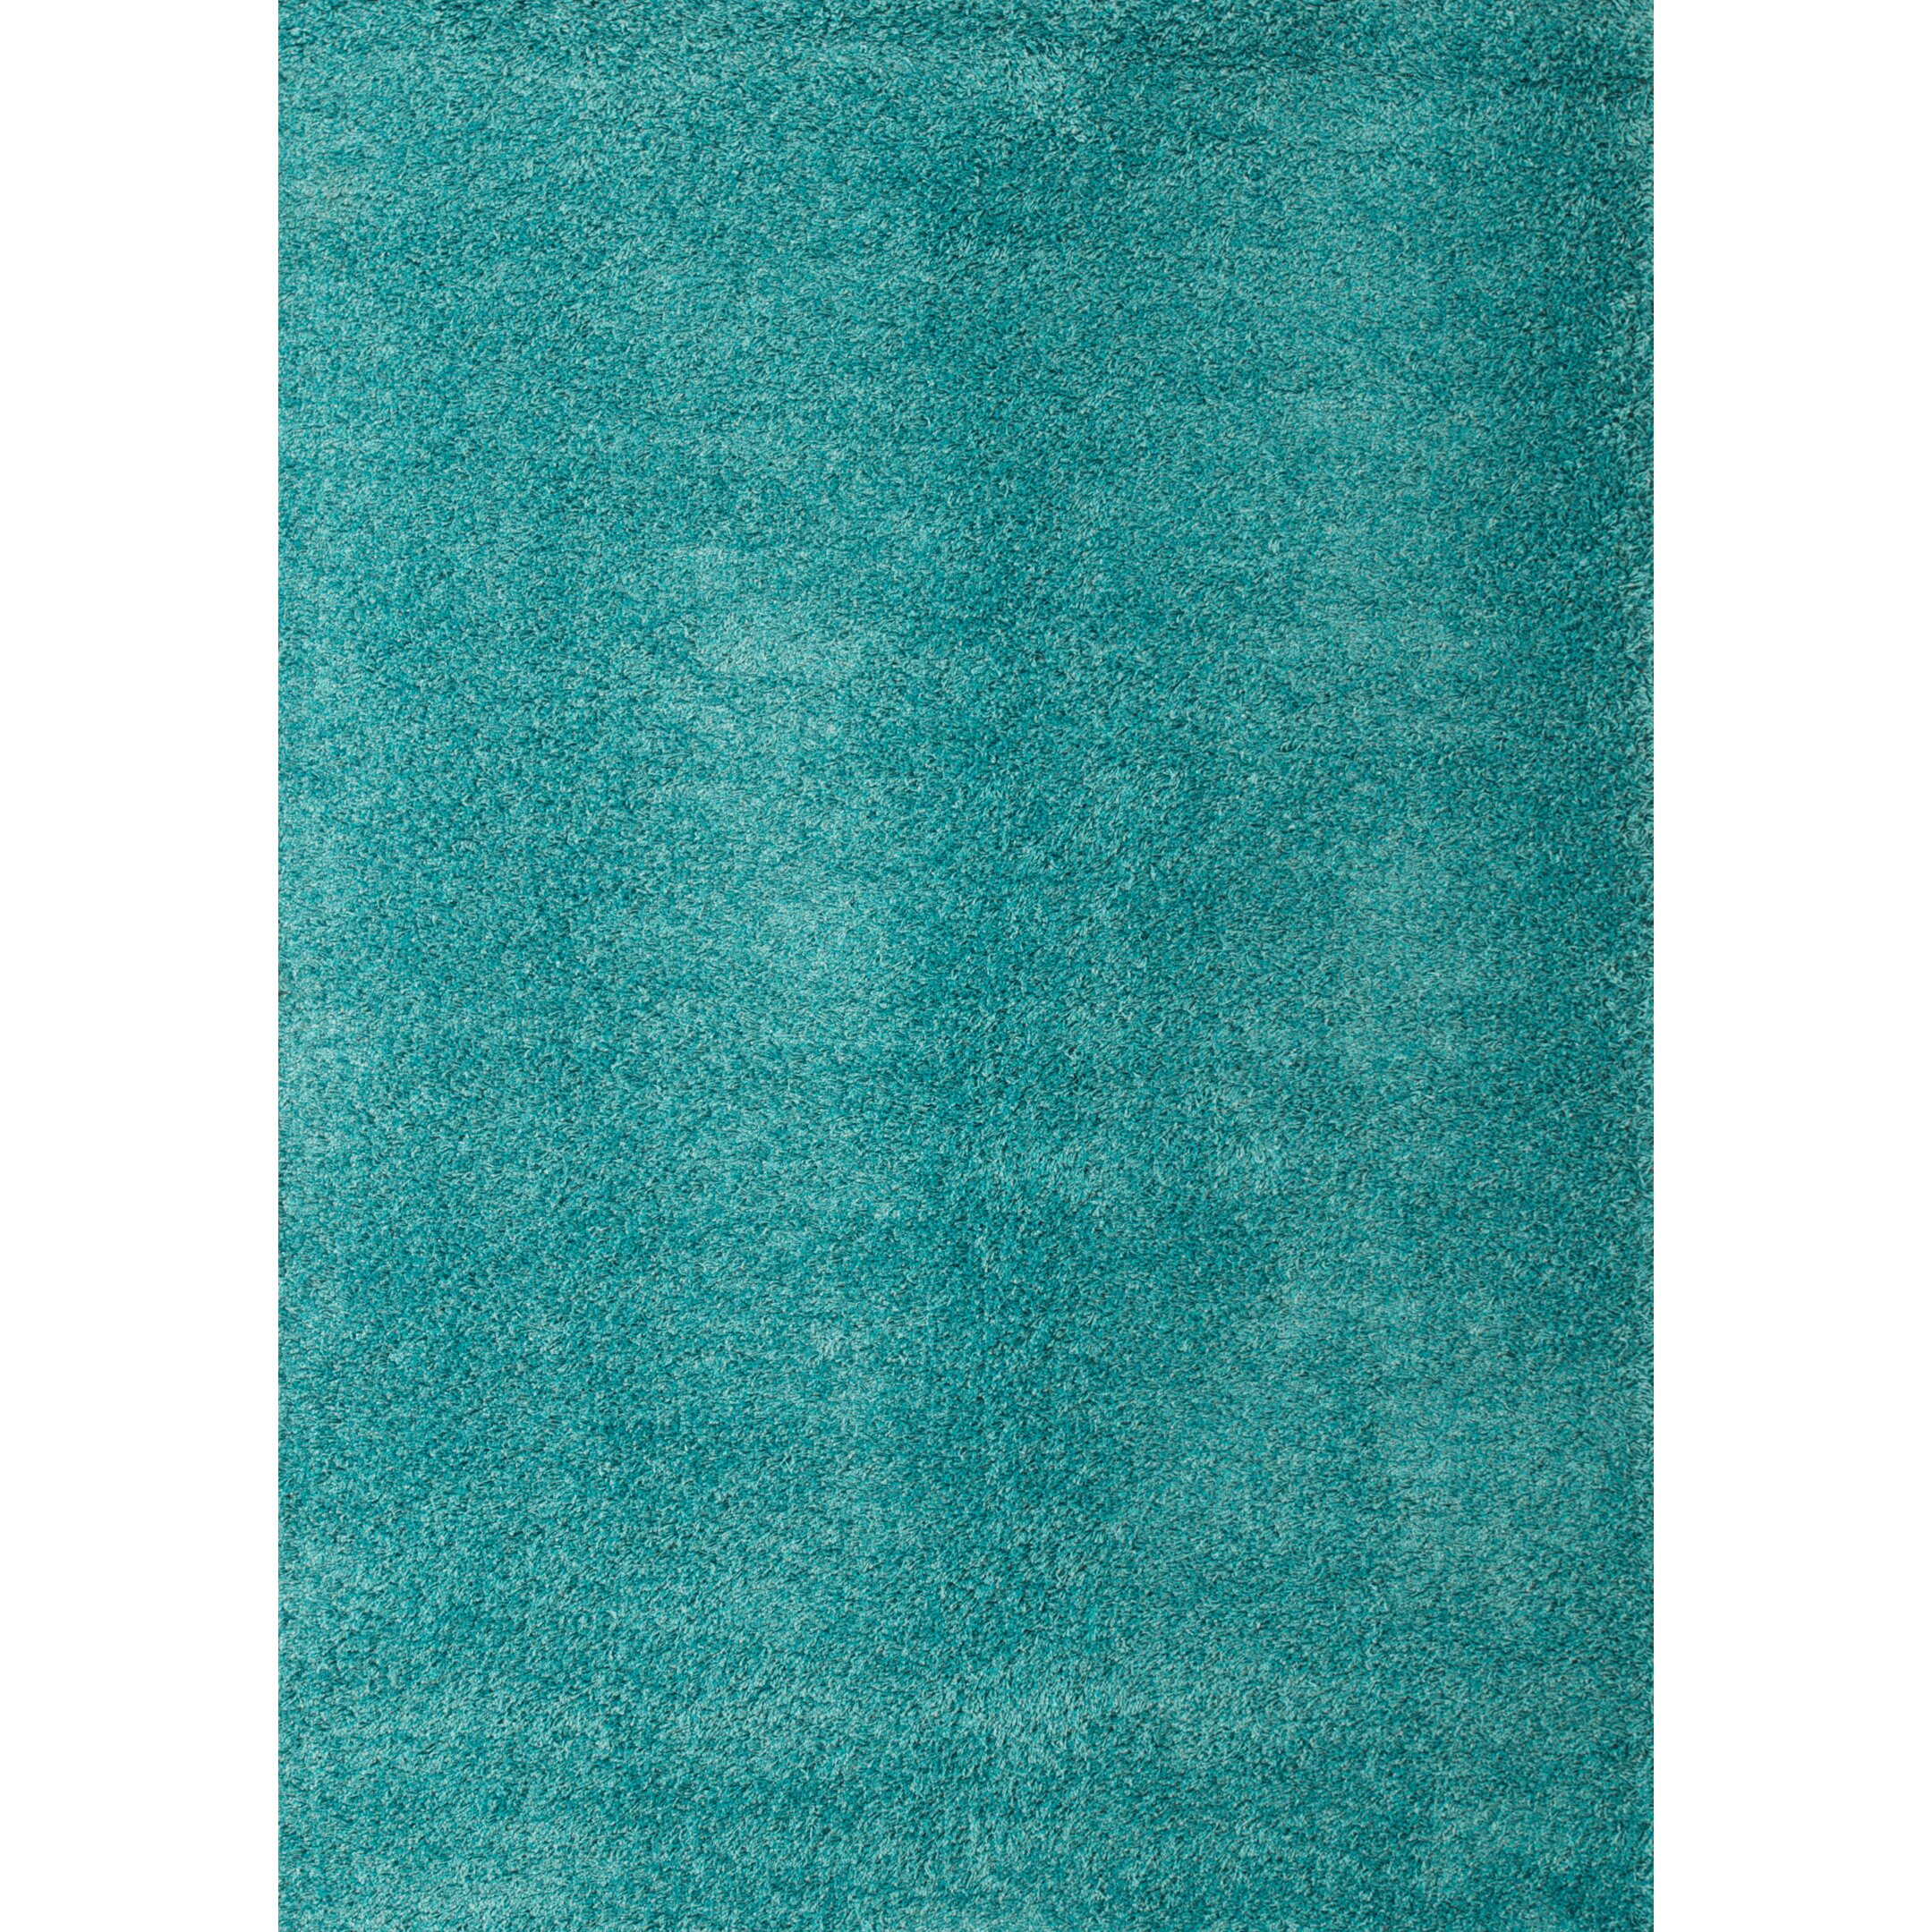 Abacasa Domino Teal Area Rug Amp Reviews Wayfair